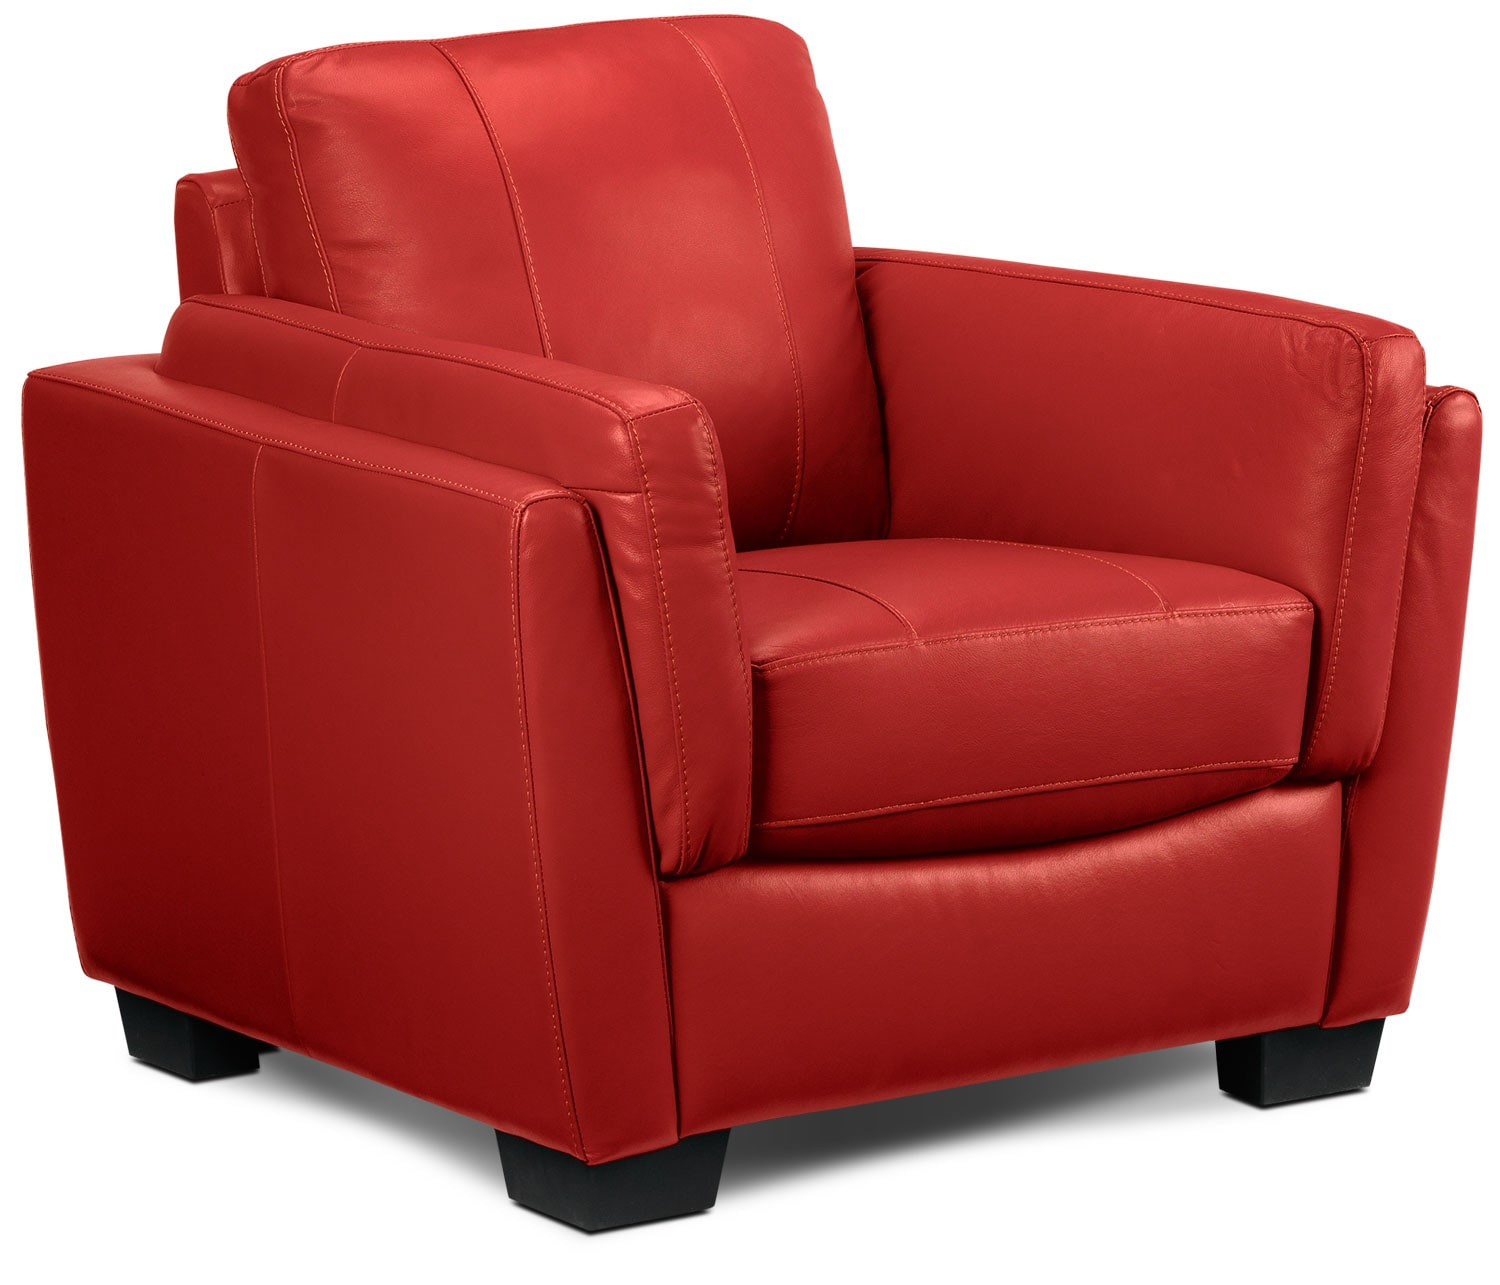 Living Room Furniture - Isadore Chair - Red